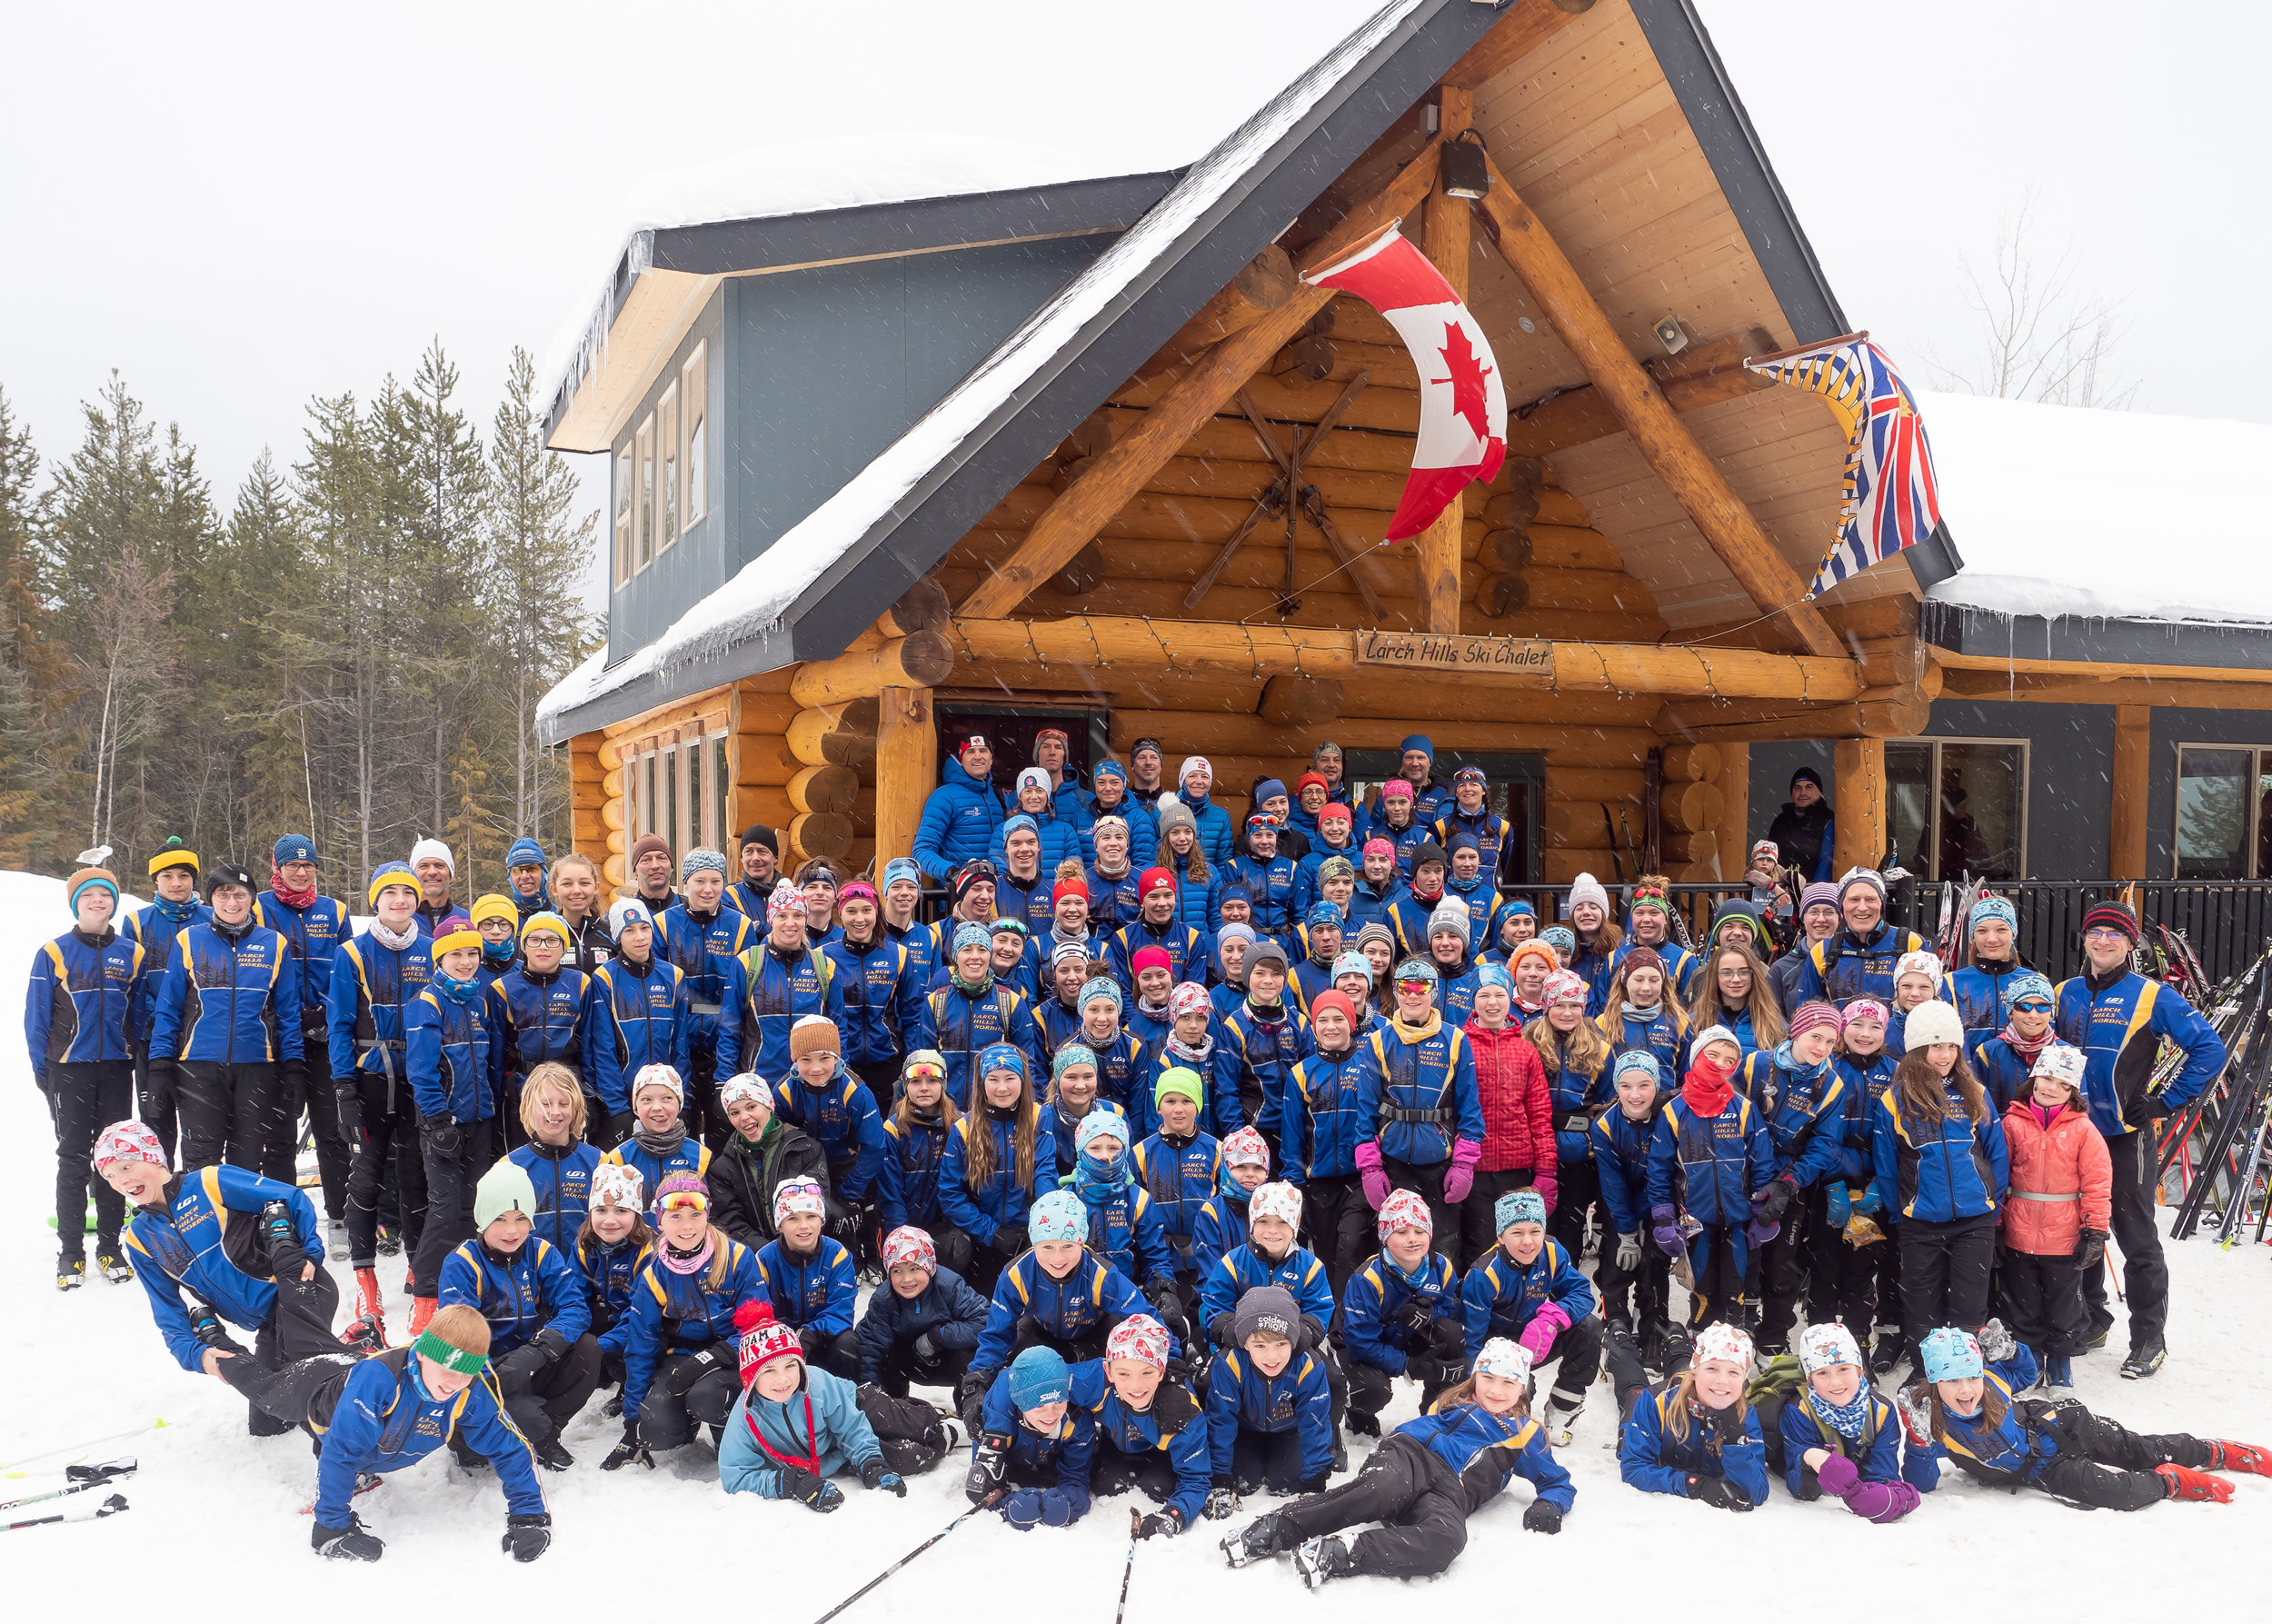 Jan 2019 Ski Team Picture.jpg